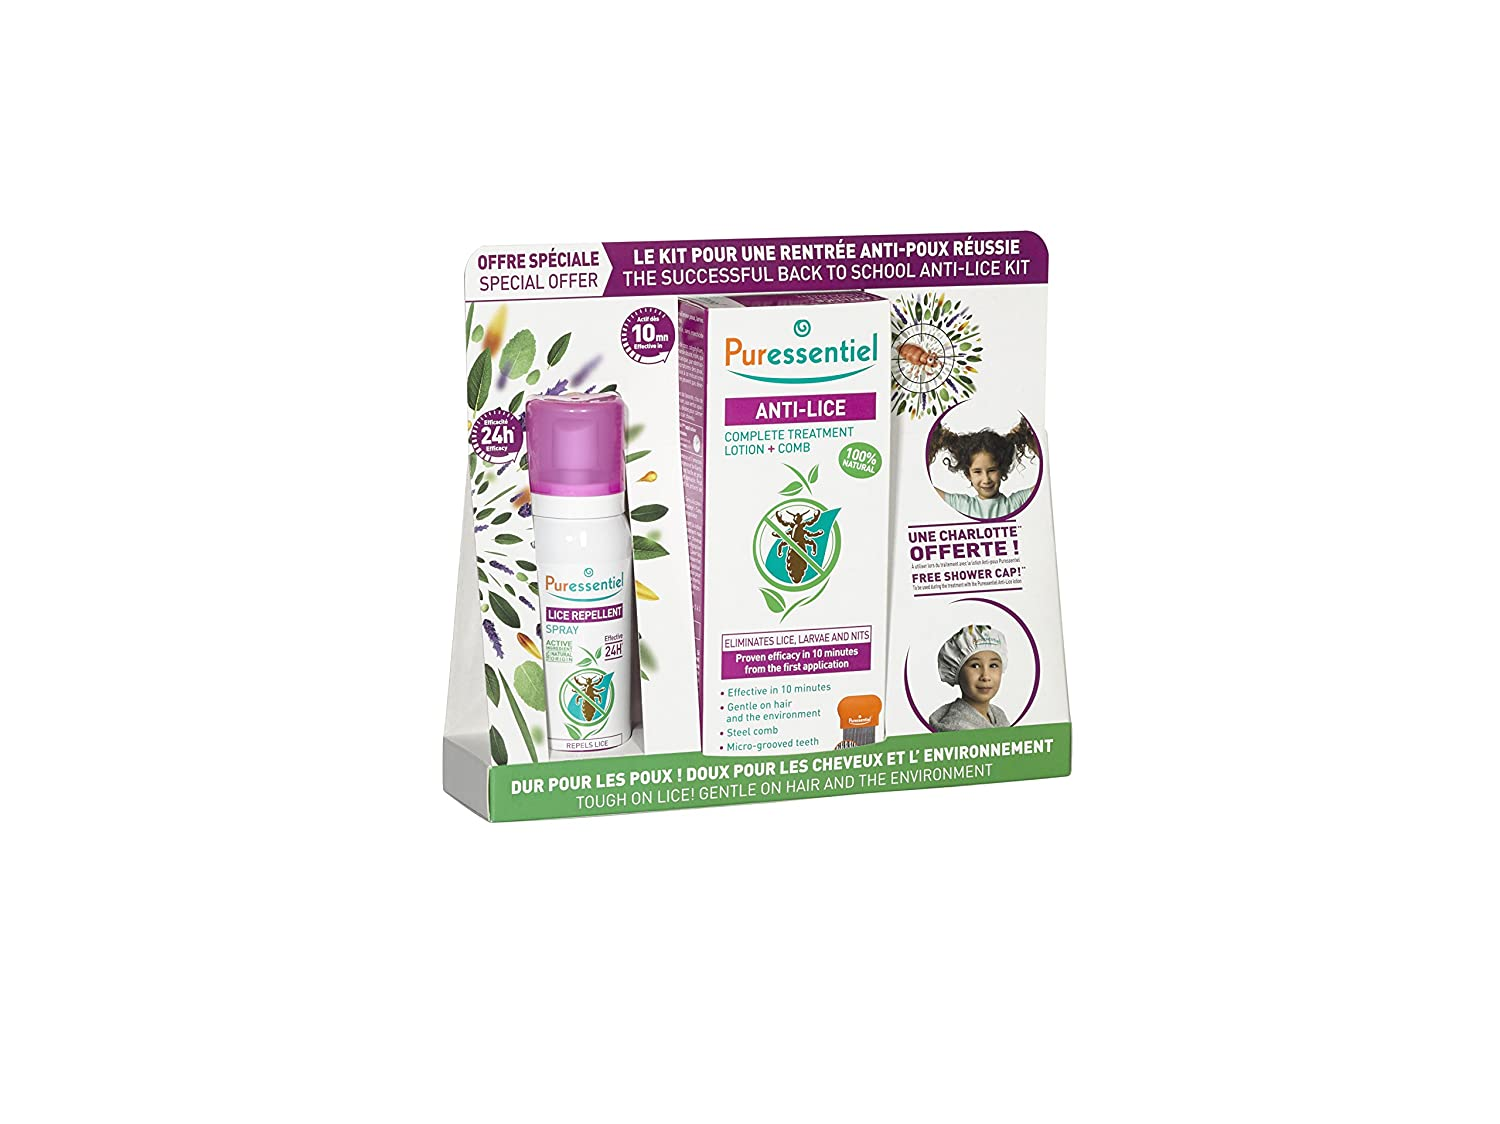 Puressentiel Anti-Lice Kit - Treatment Lotion with Comb 100ml, Lice Repellent Spray 75 ml, Free Shower Cap - Head Lice kit, 100% natural origin, proven efficacy in 10 minutes, micro-grooved comb USP9110